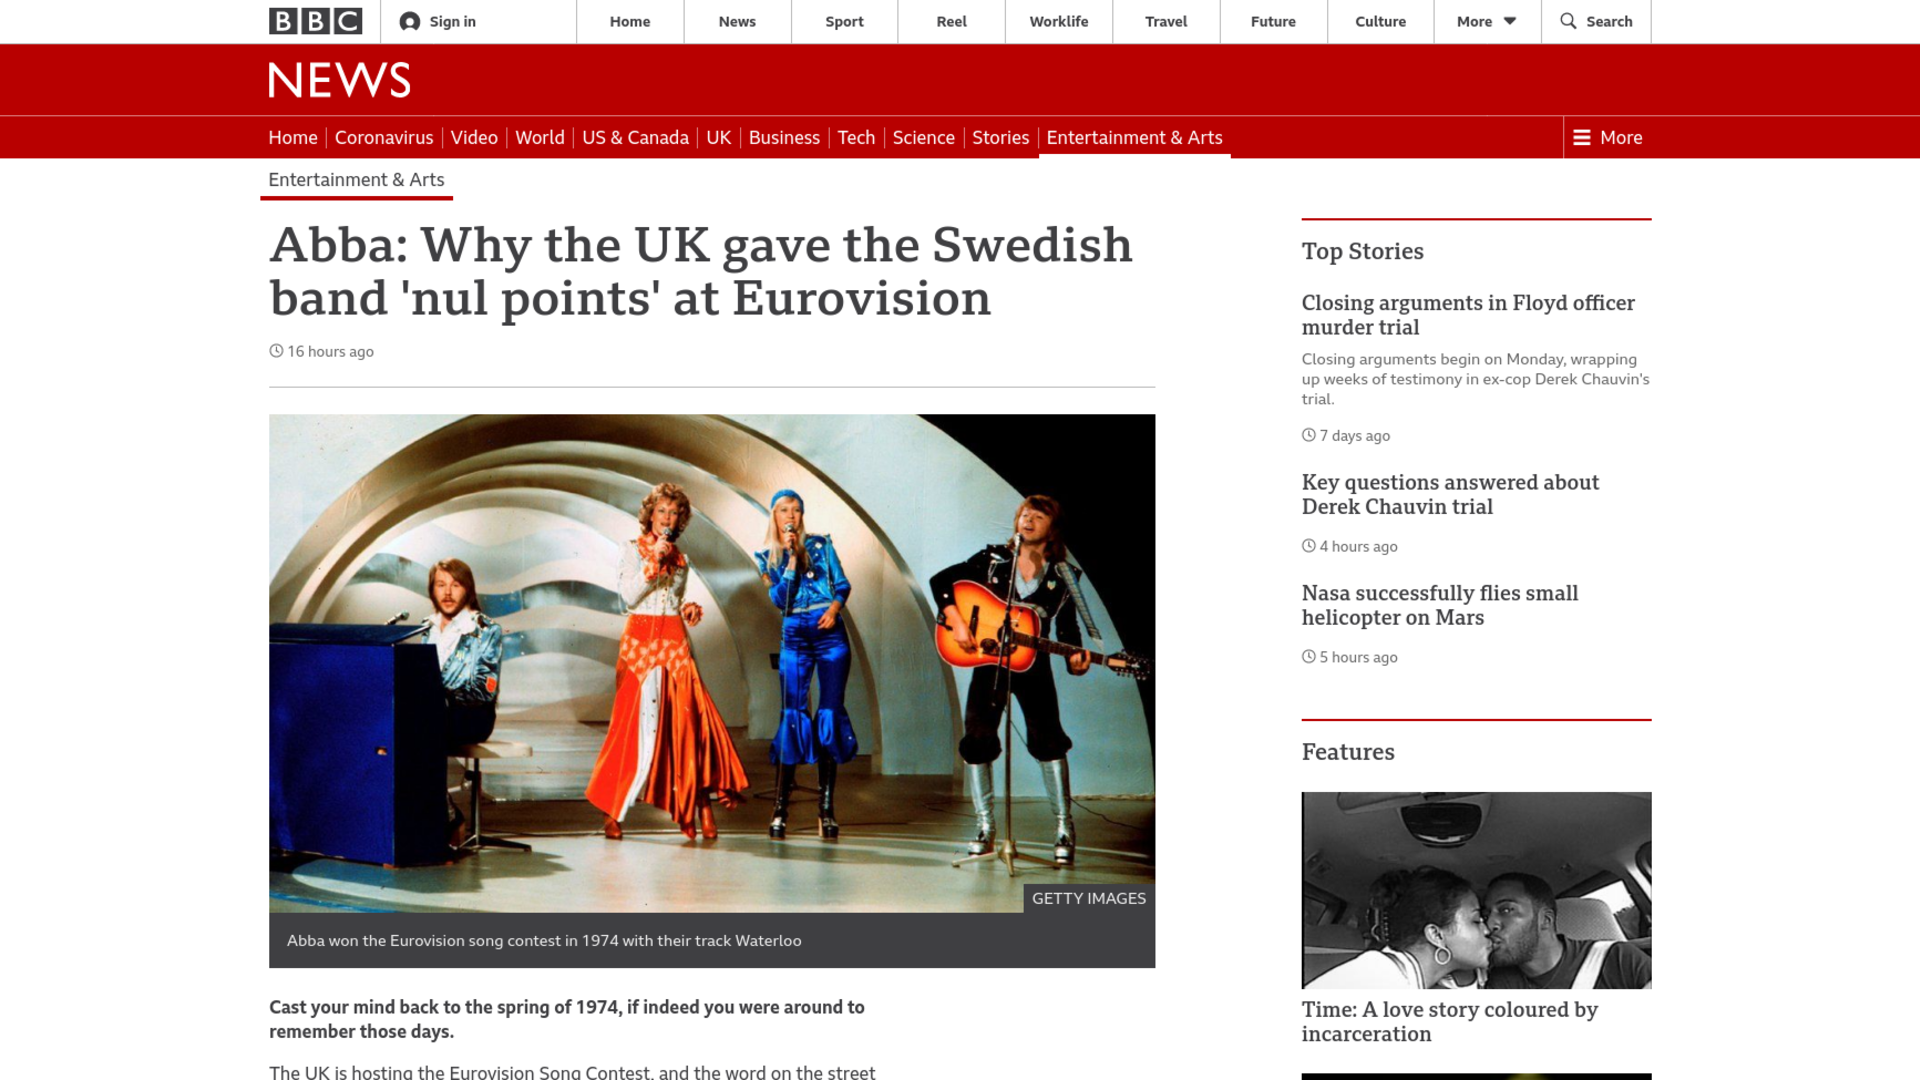 Fairness Rocks News Abba: Why the UK gave the Swedish band 'nul points' at Eurovision